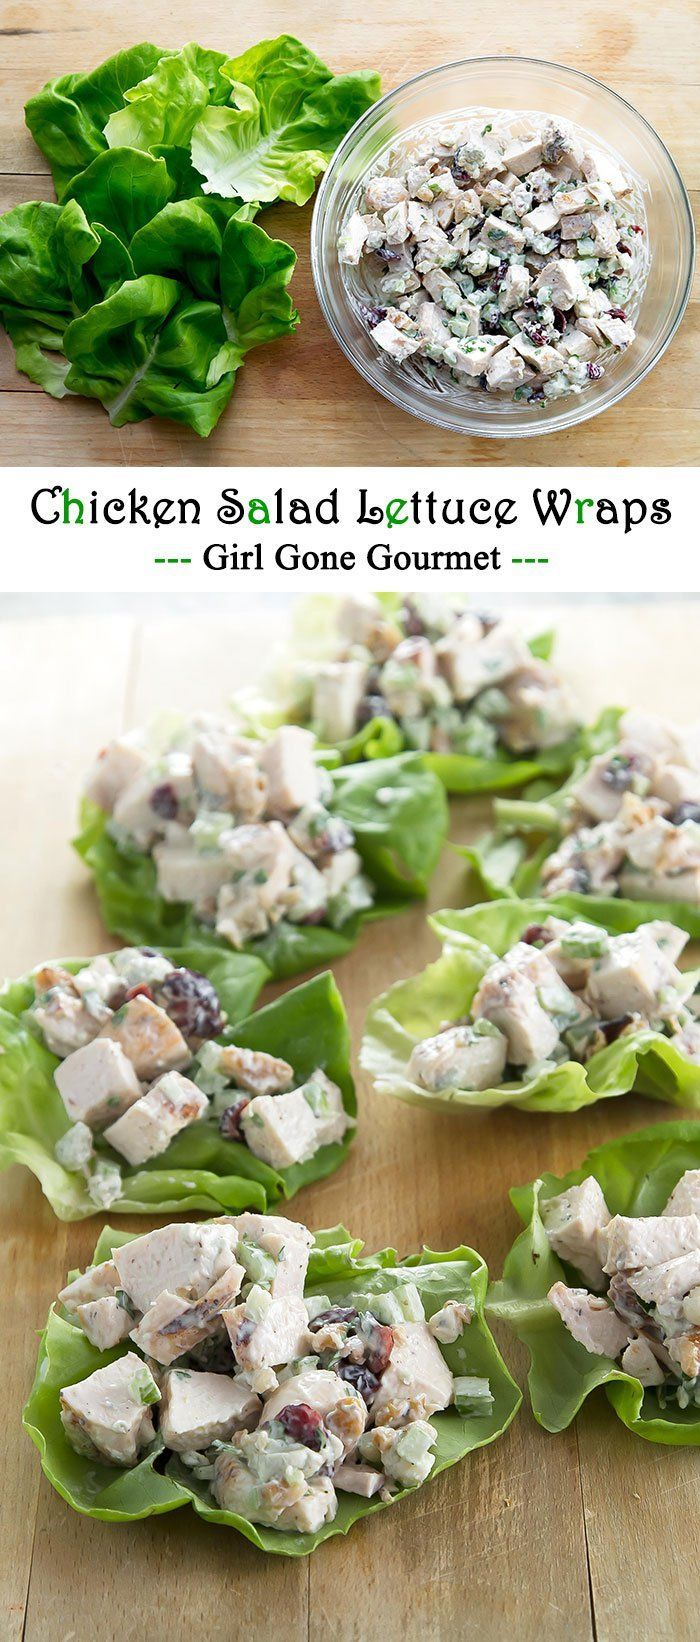 Delicious chicken salad with creamy mayo, grilled chicken, fresh herbs, dried cranberries, walnuts, and blue cheese. Wrap it up in a butter lettuce leaf and you've got lunch!   girlgonegourmet.com